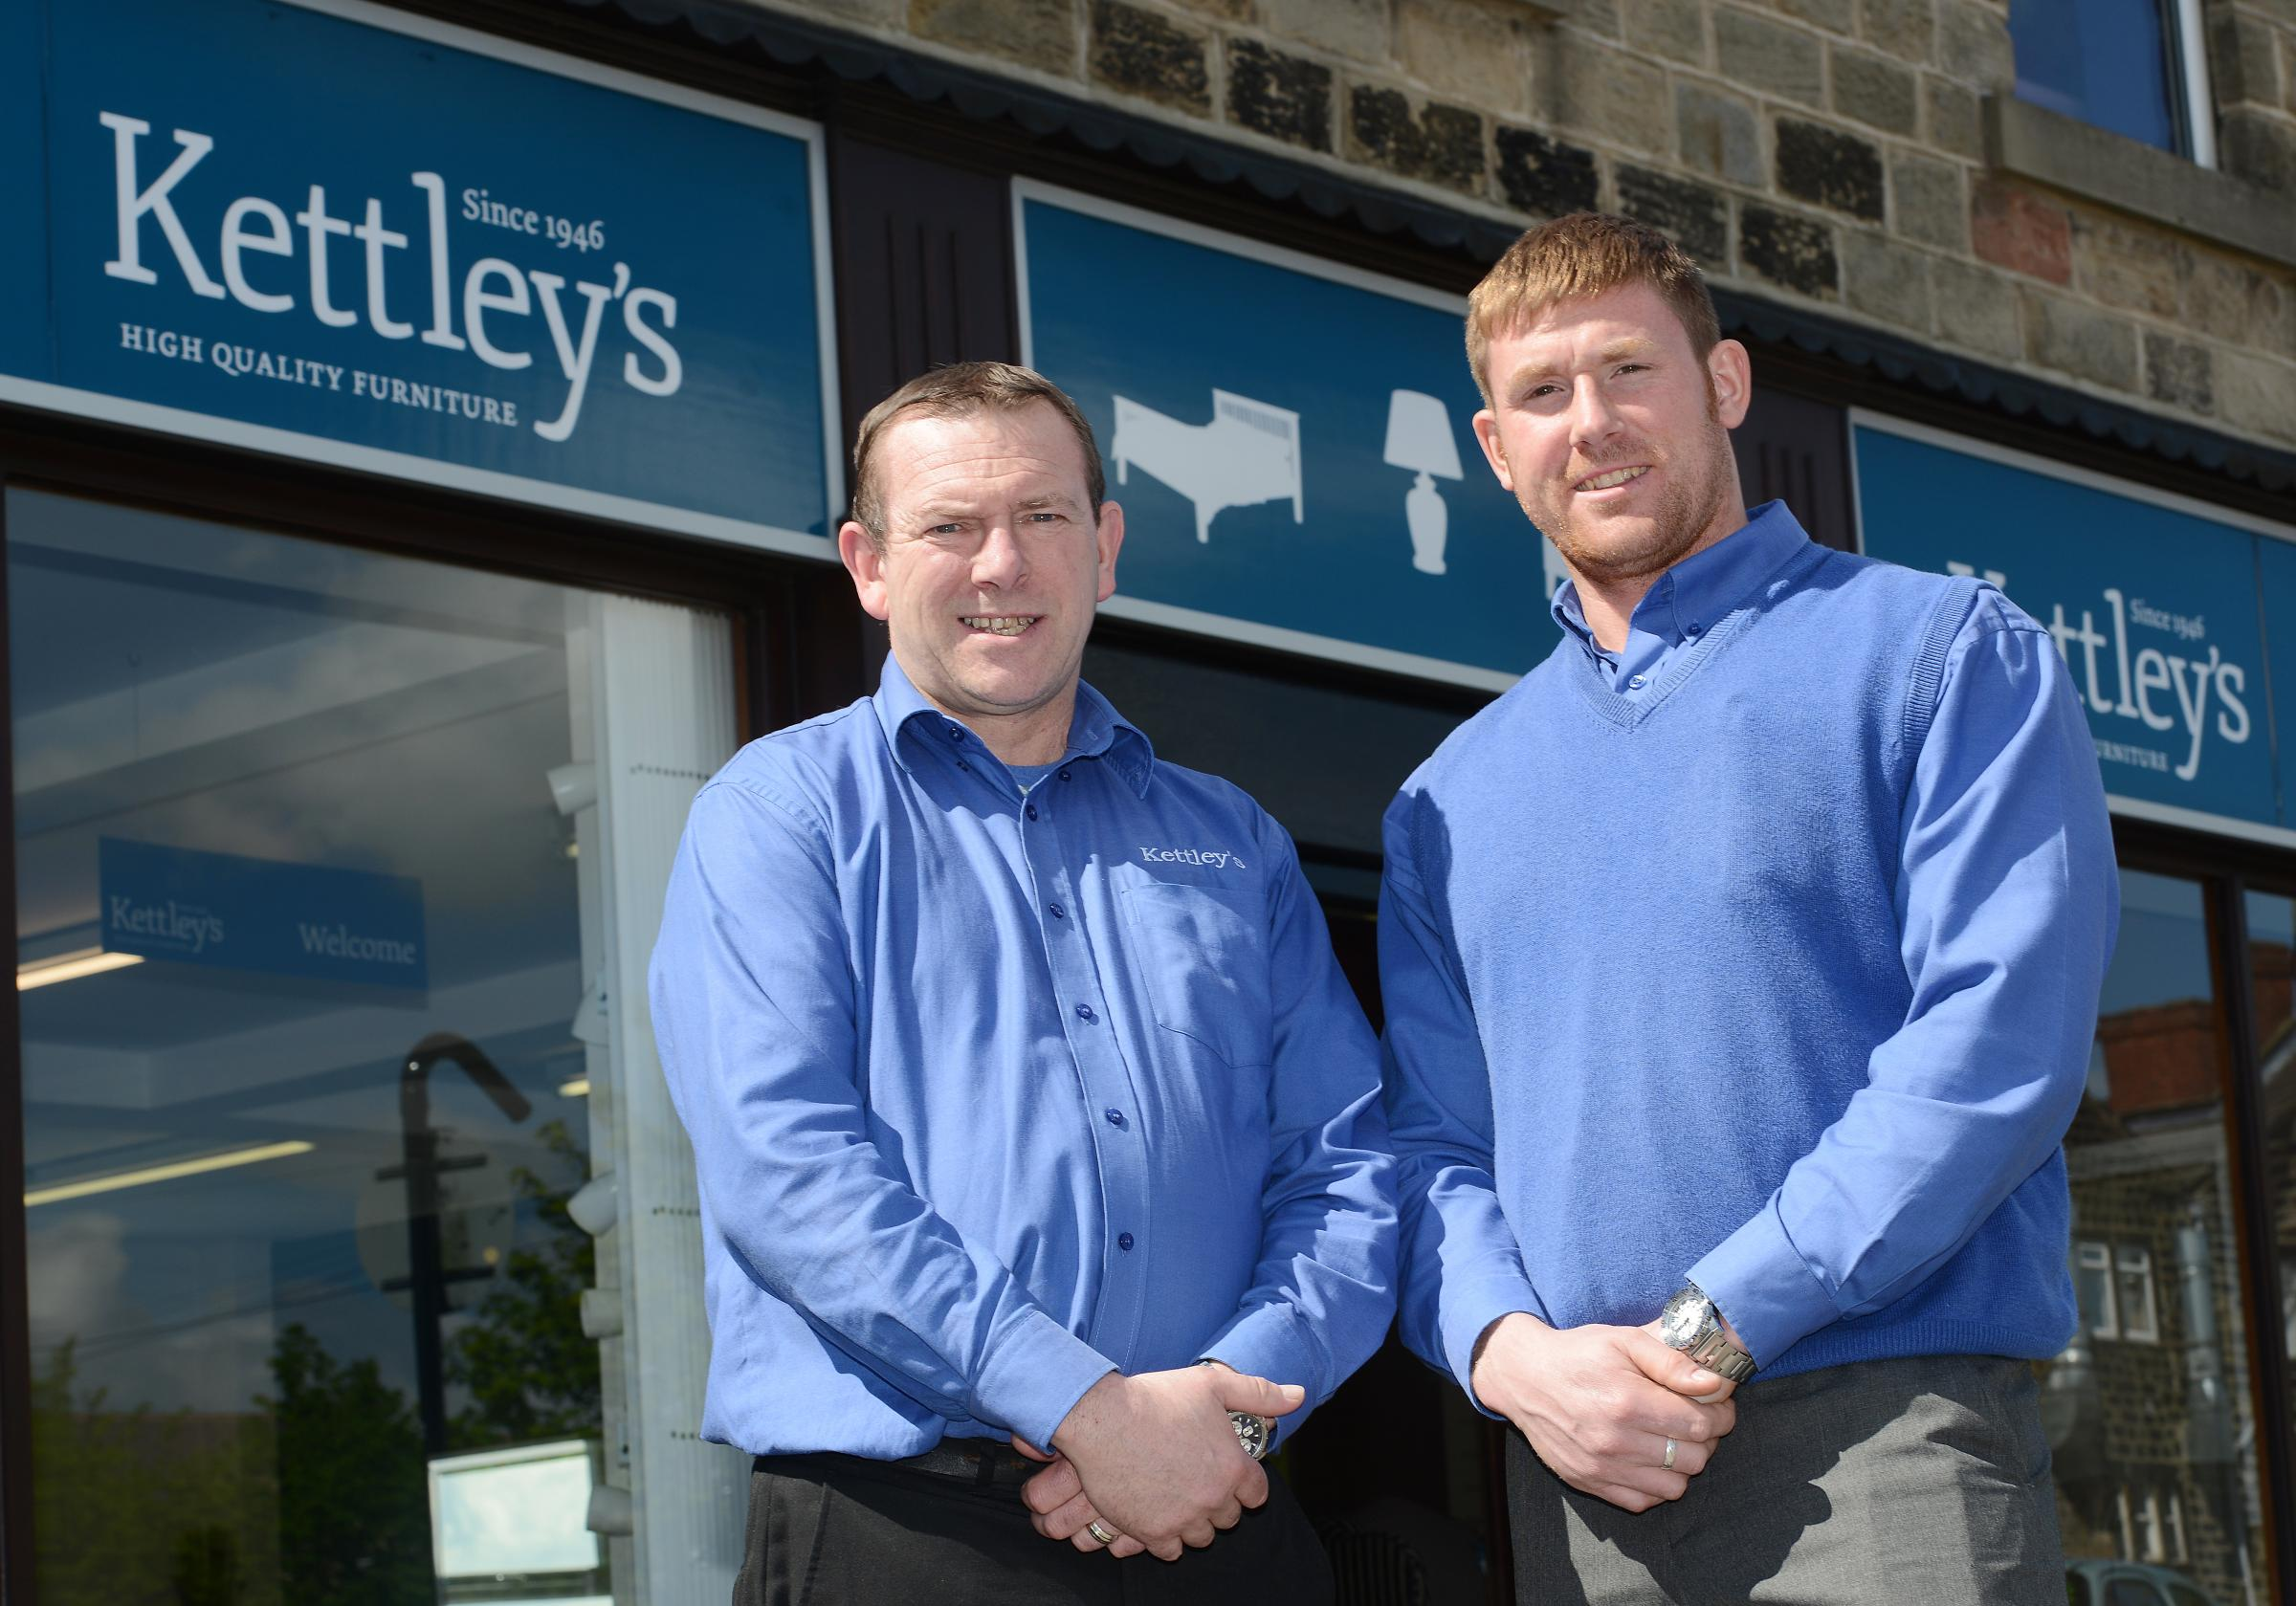 David Butler and Andrew Collop outside Kettley's, Ivegate, Yeadon